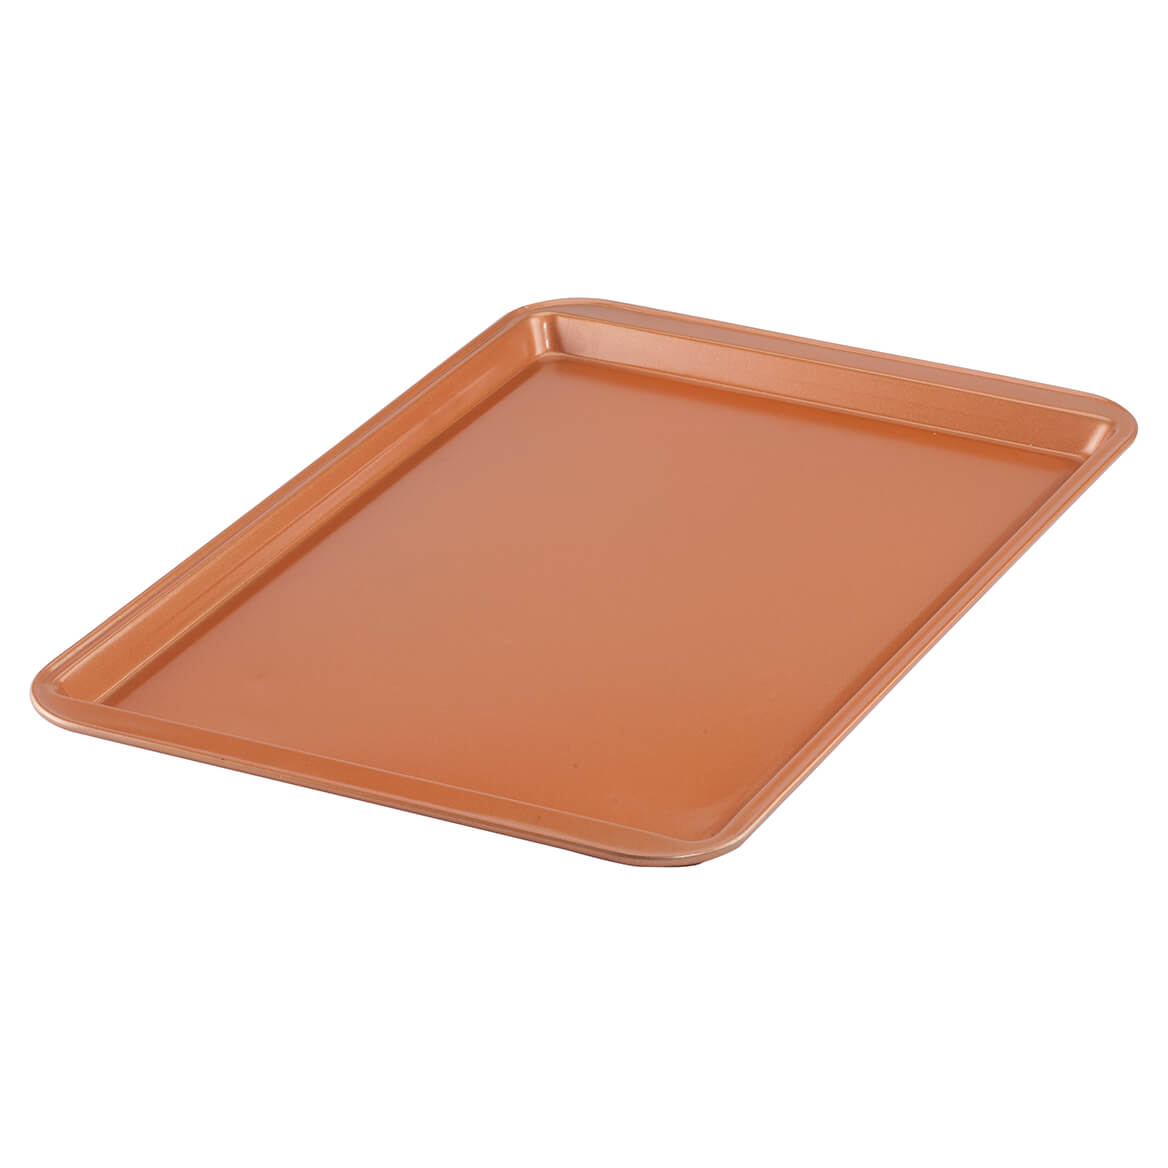 Ceramic Copper Baking Sheet